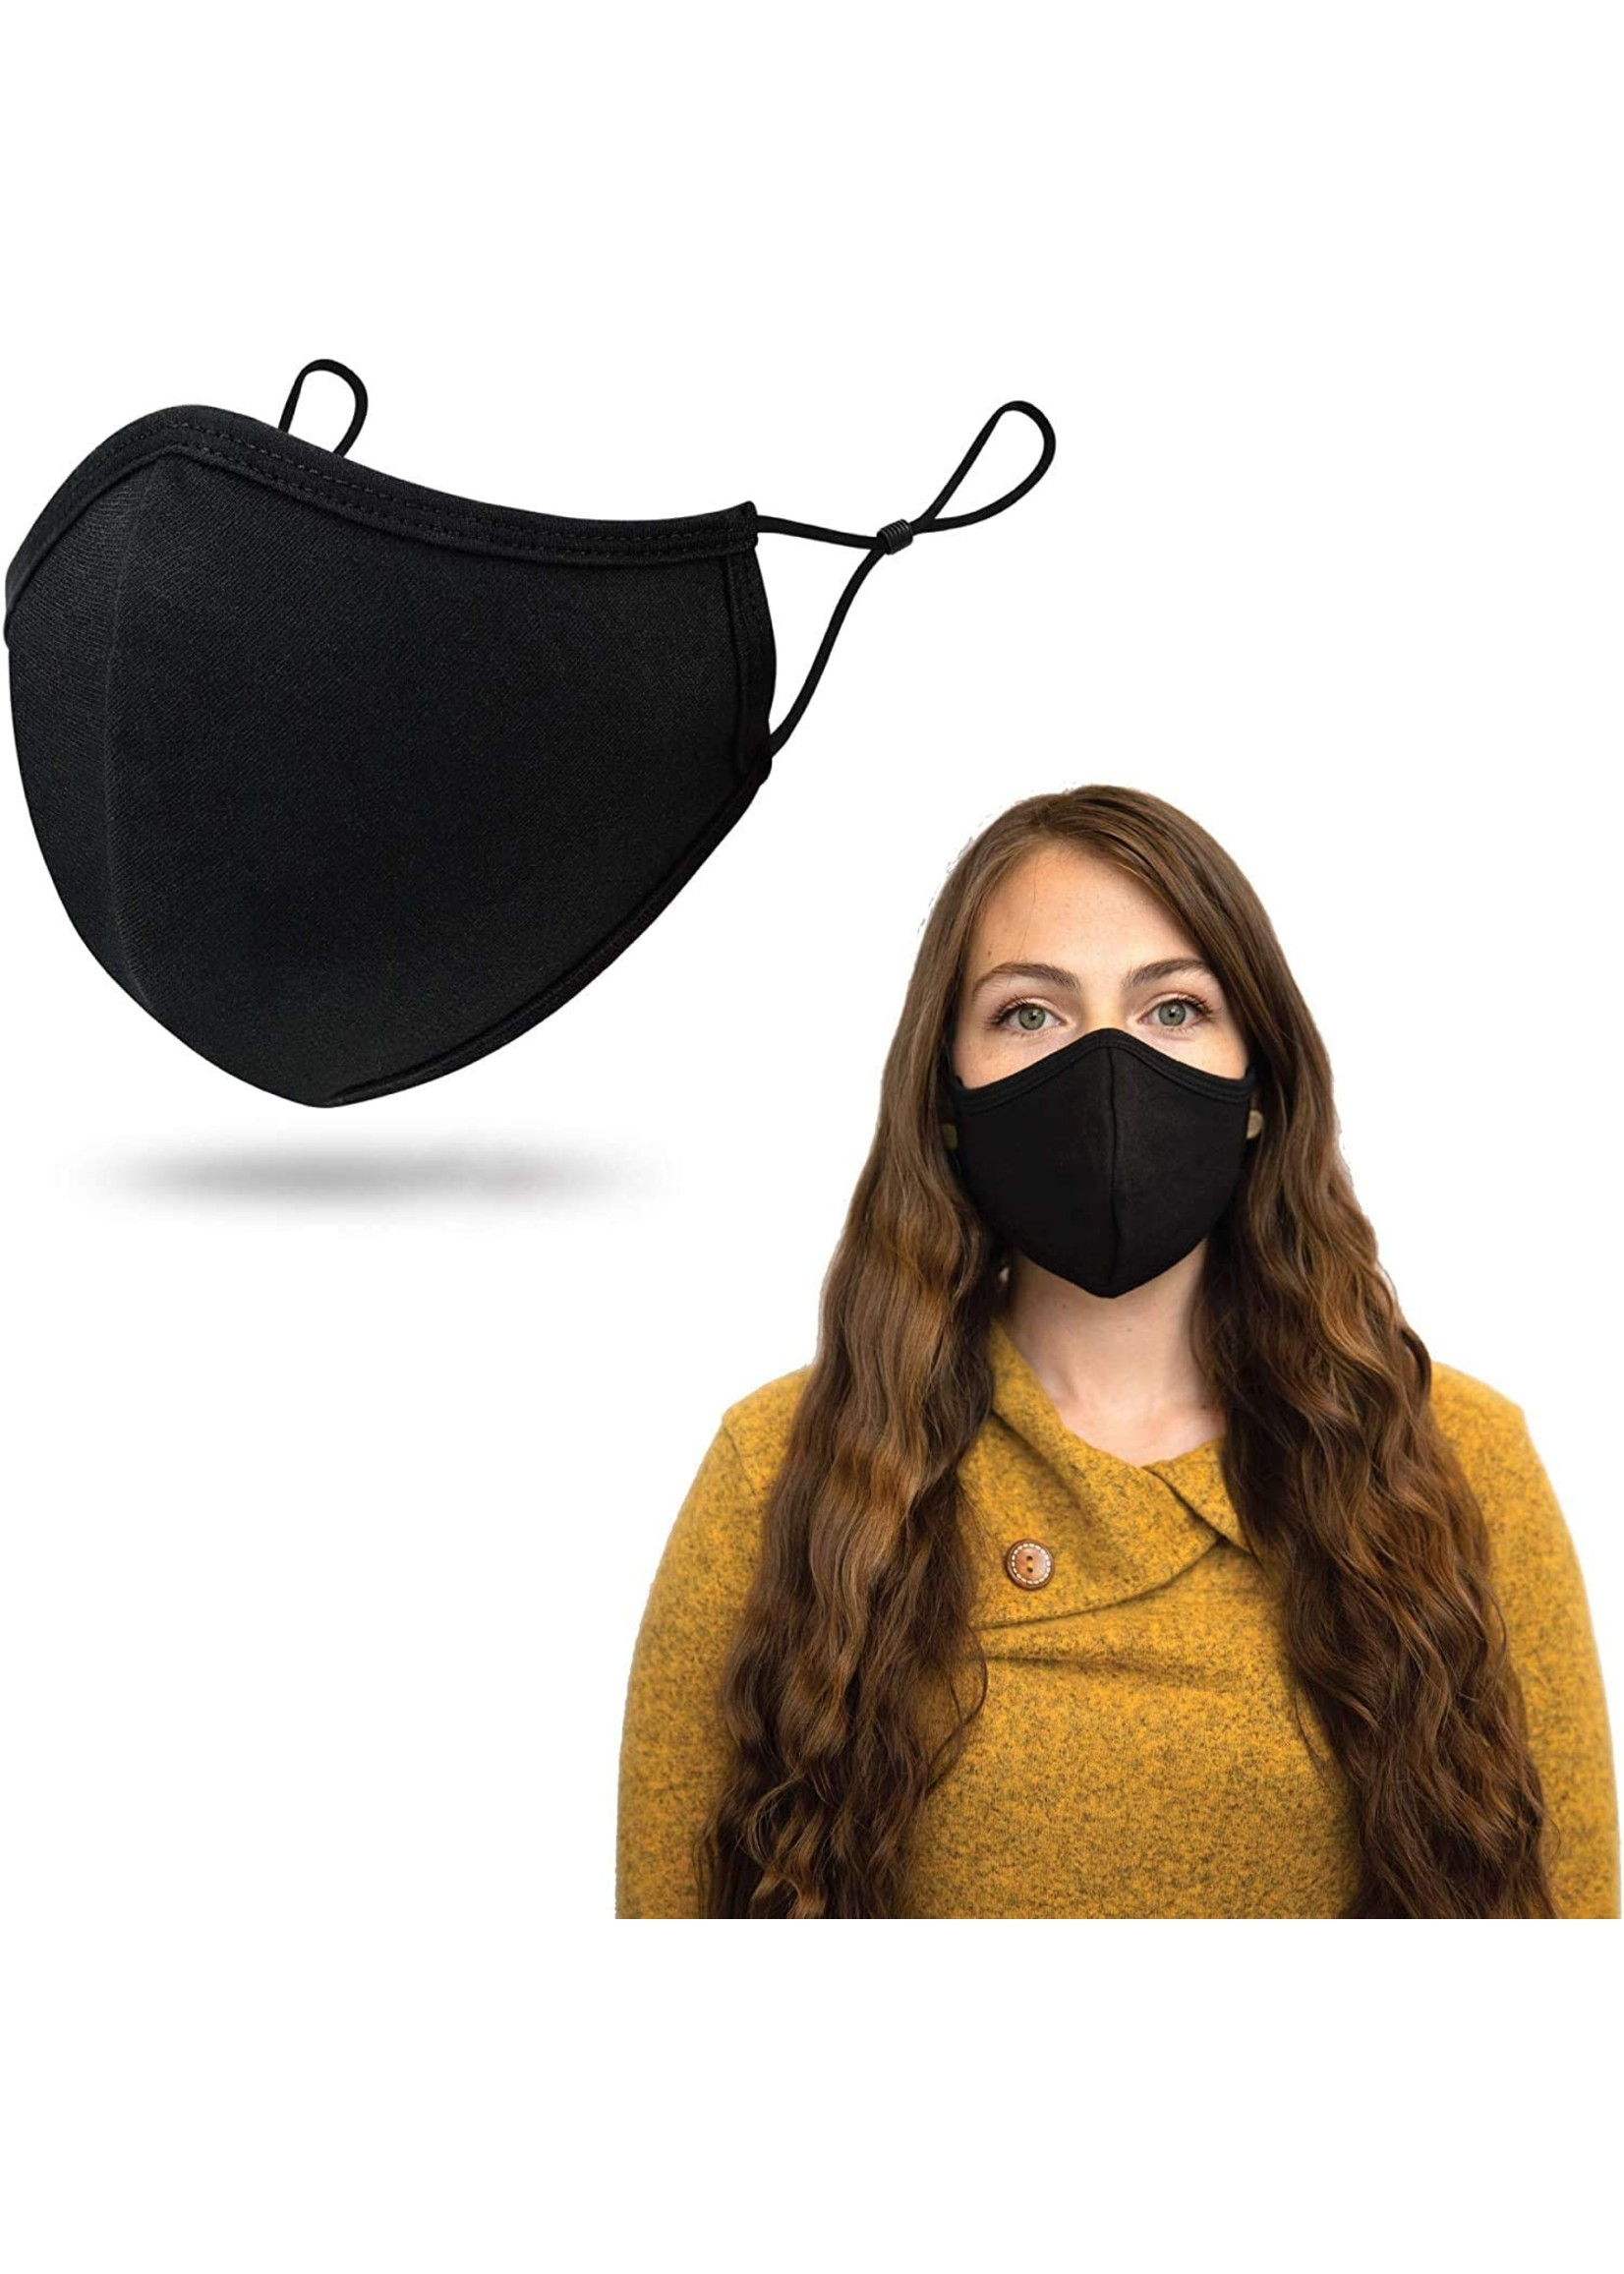 Black Fabric Face Masks With Adjustable Straps